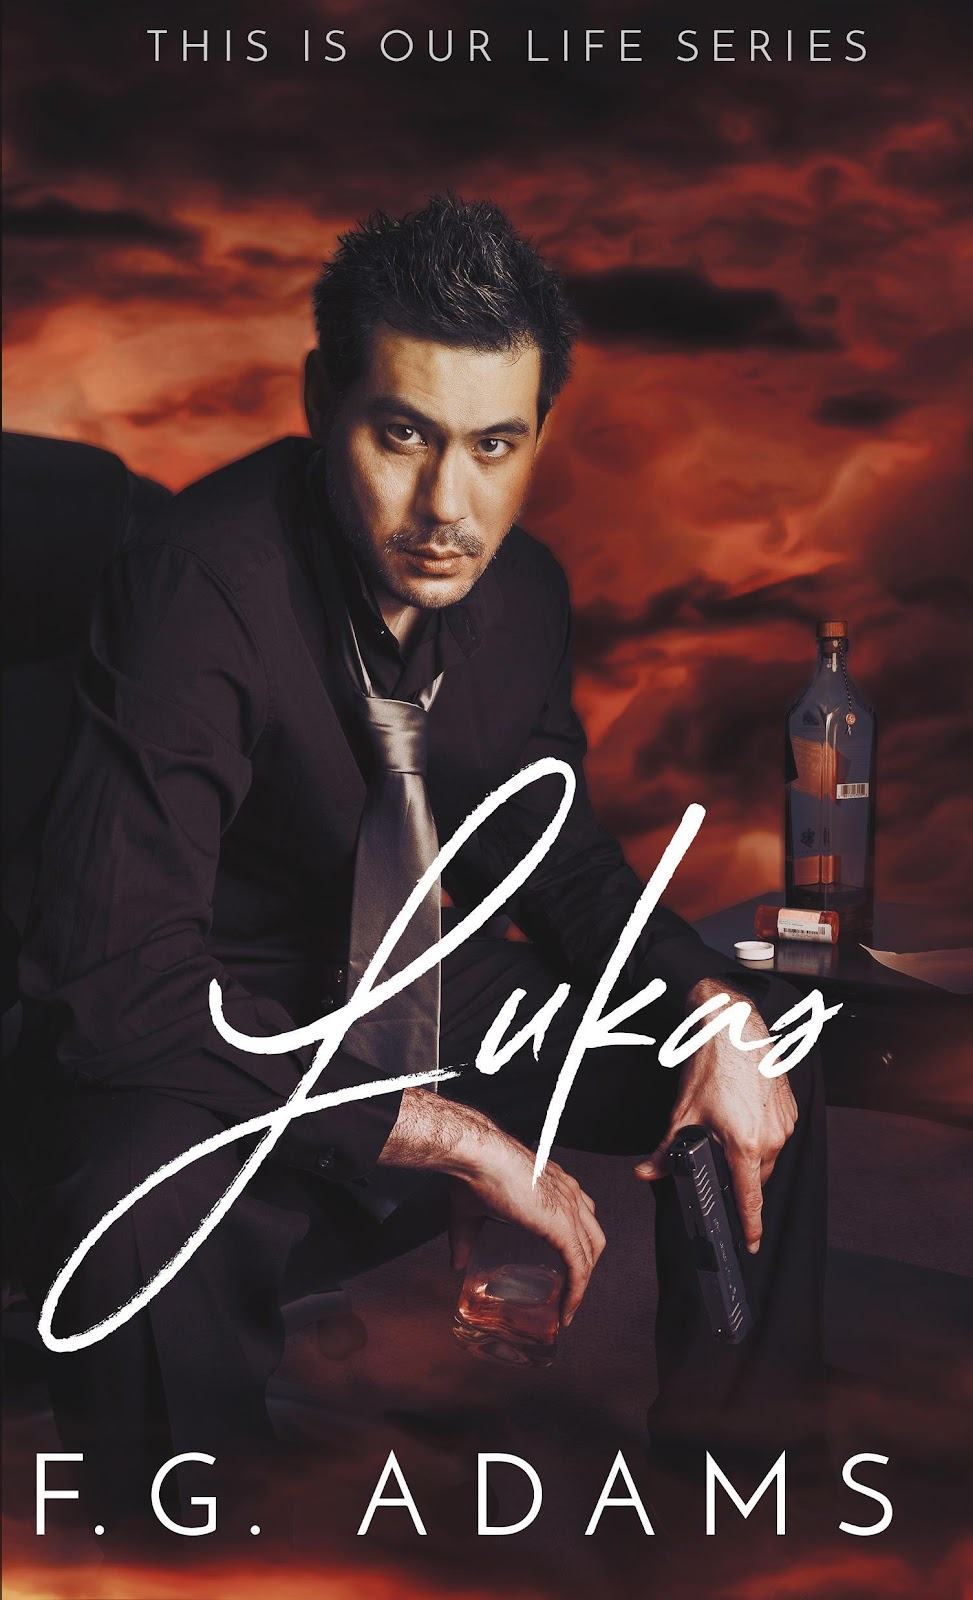 Lukas Ebook